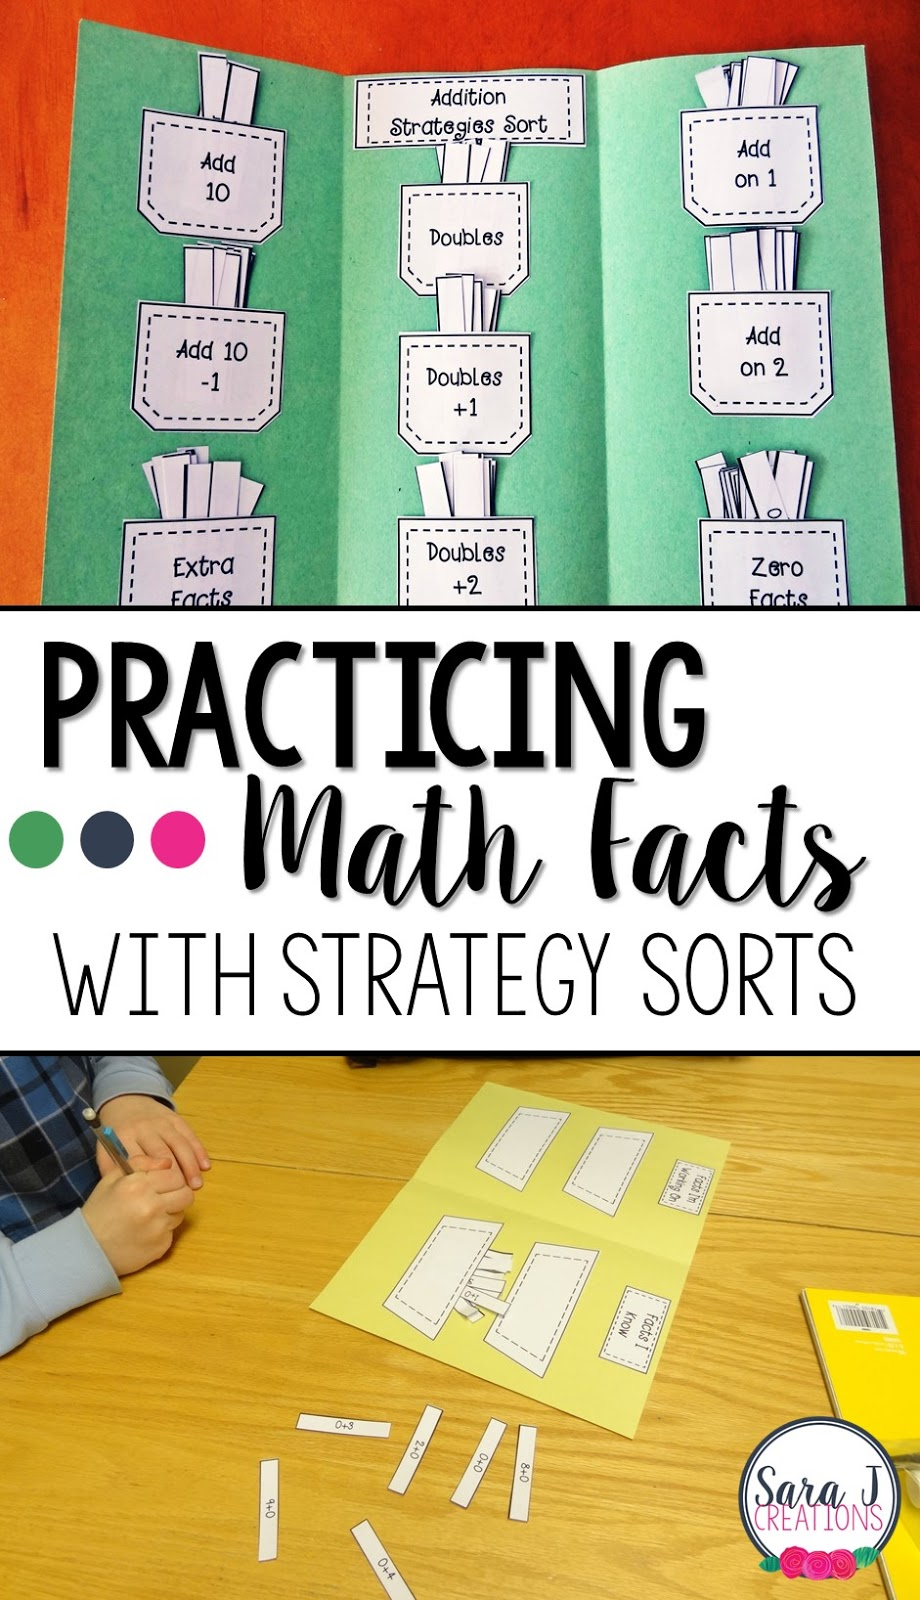 Games, printables and teaching ideas to make math fact practice and developing fluency more fun.